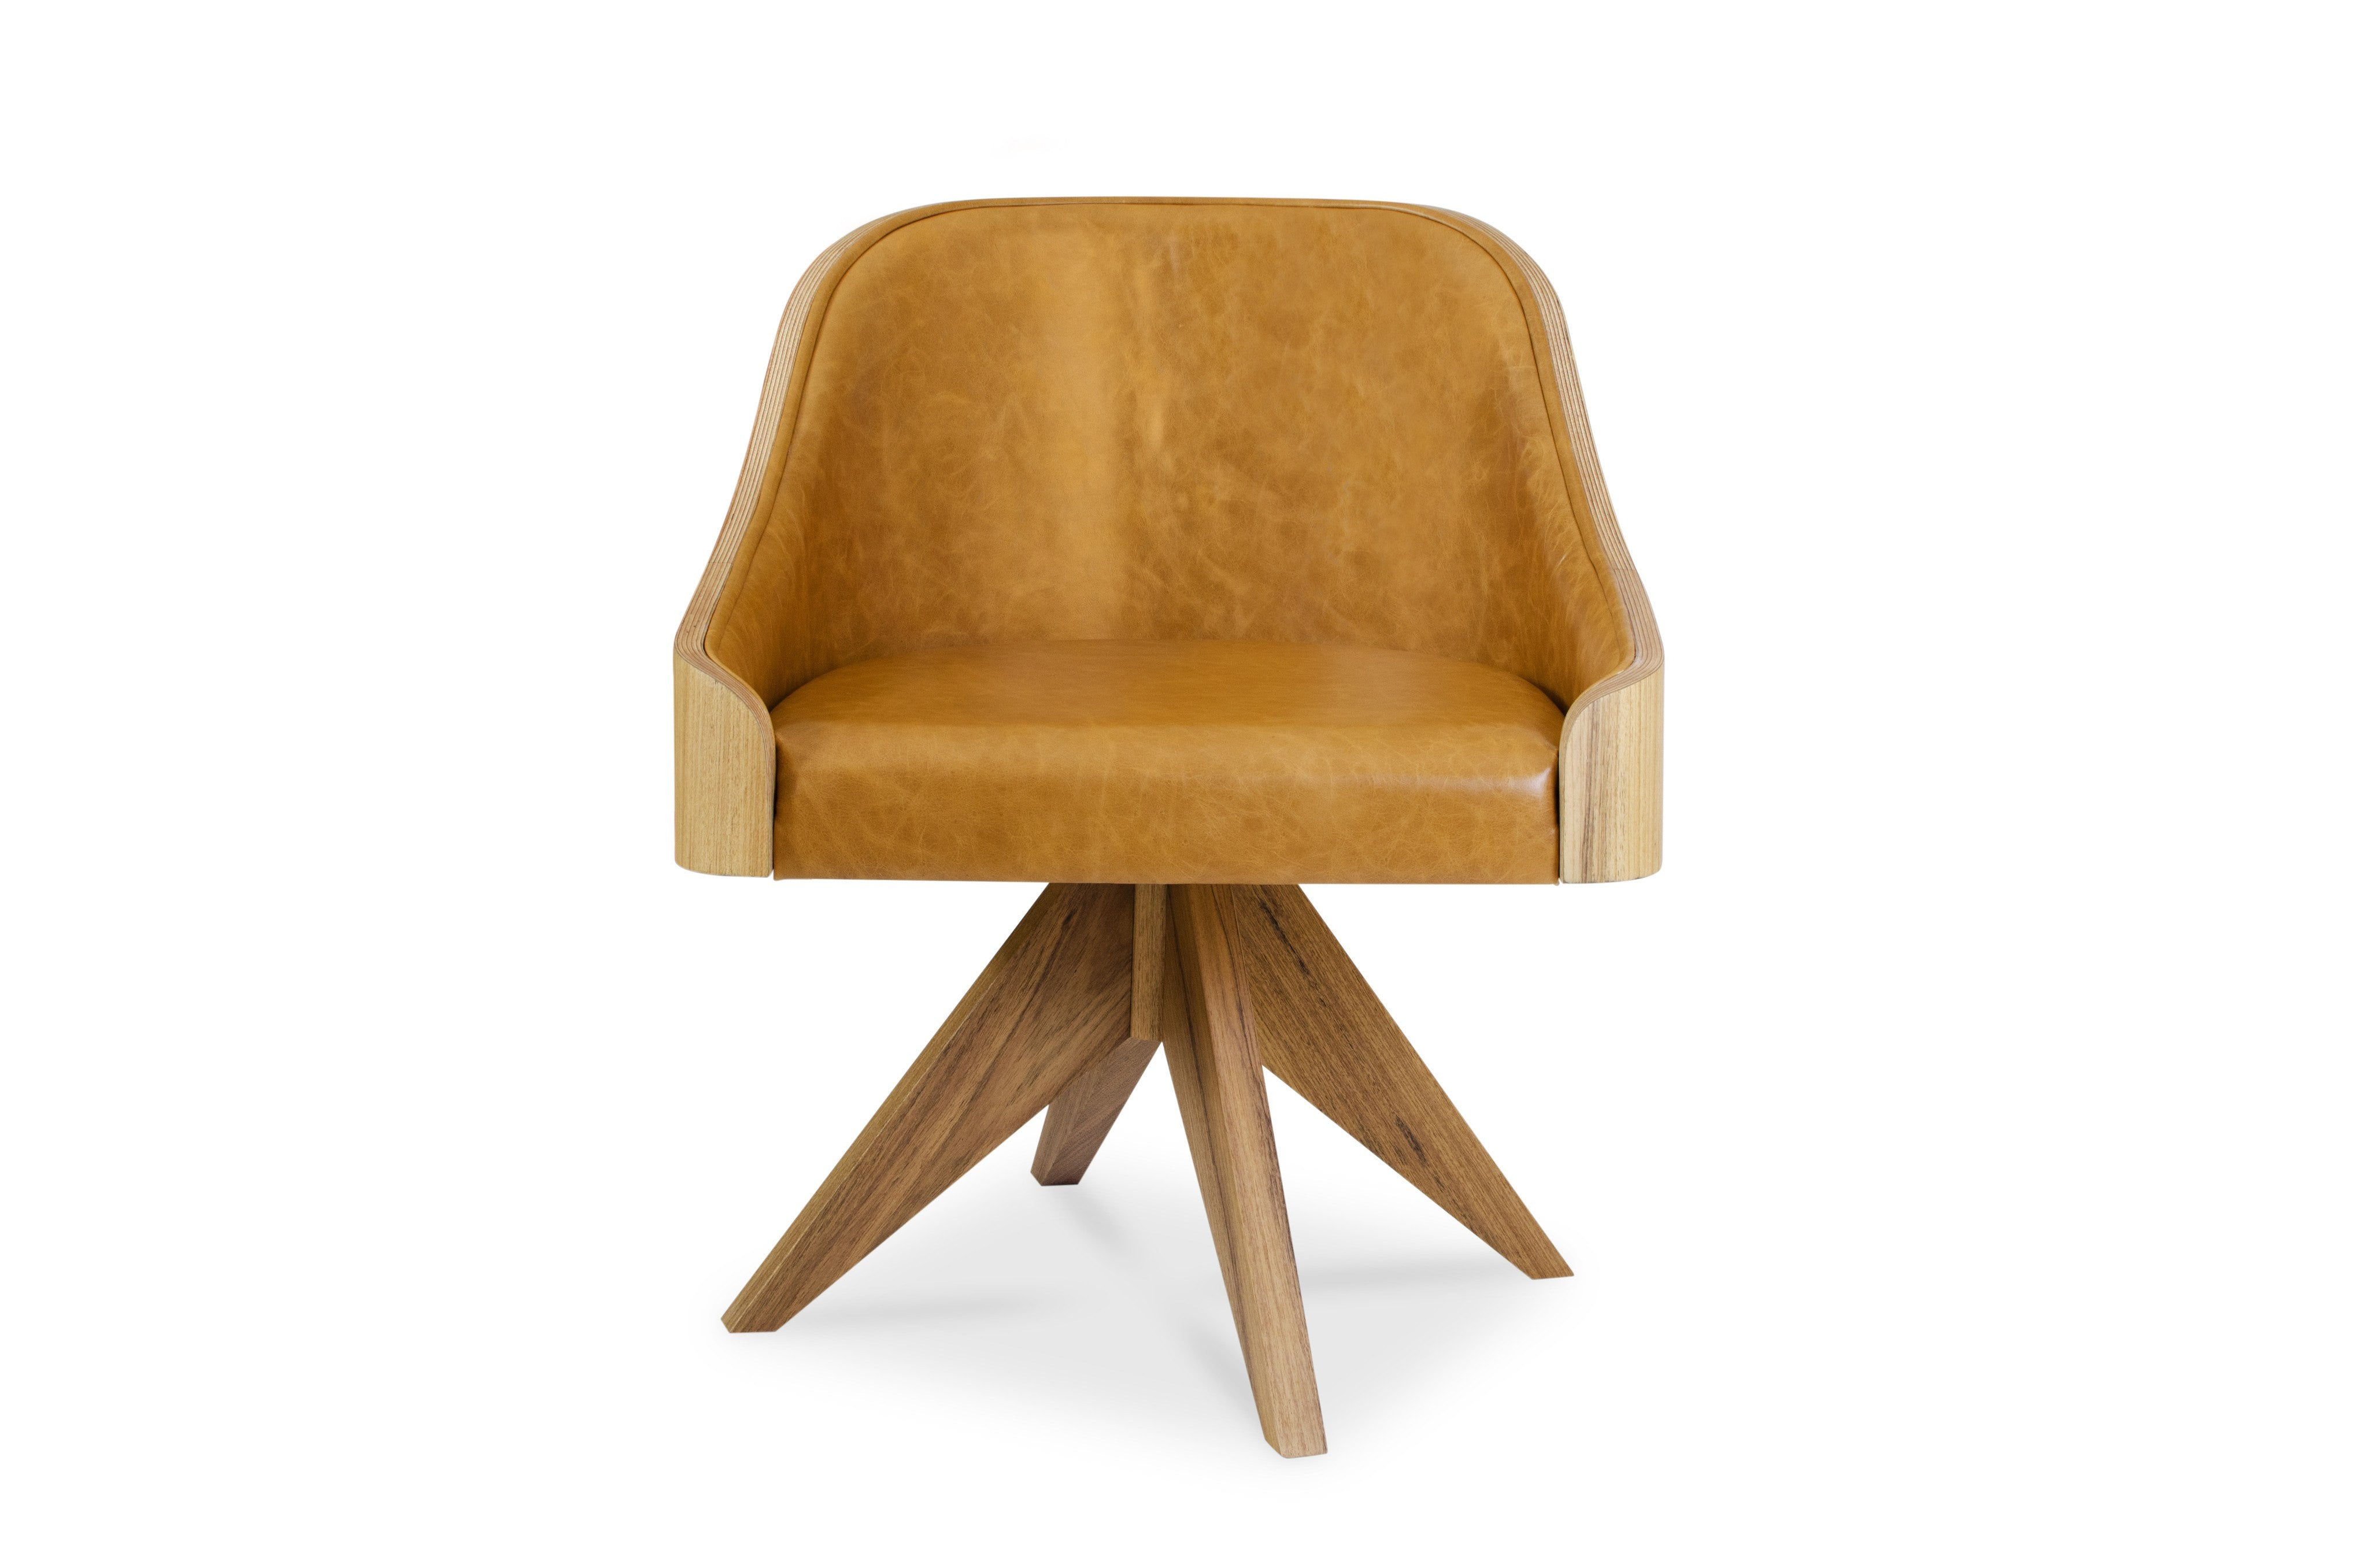 Fulana lounge chair by Maria Candida Machado - Kelly Christian Designs